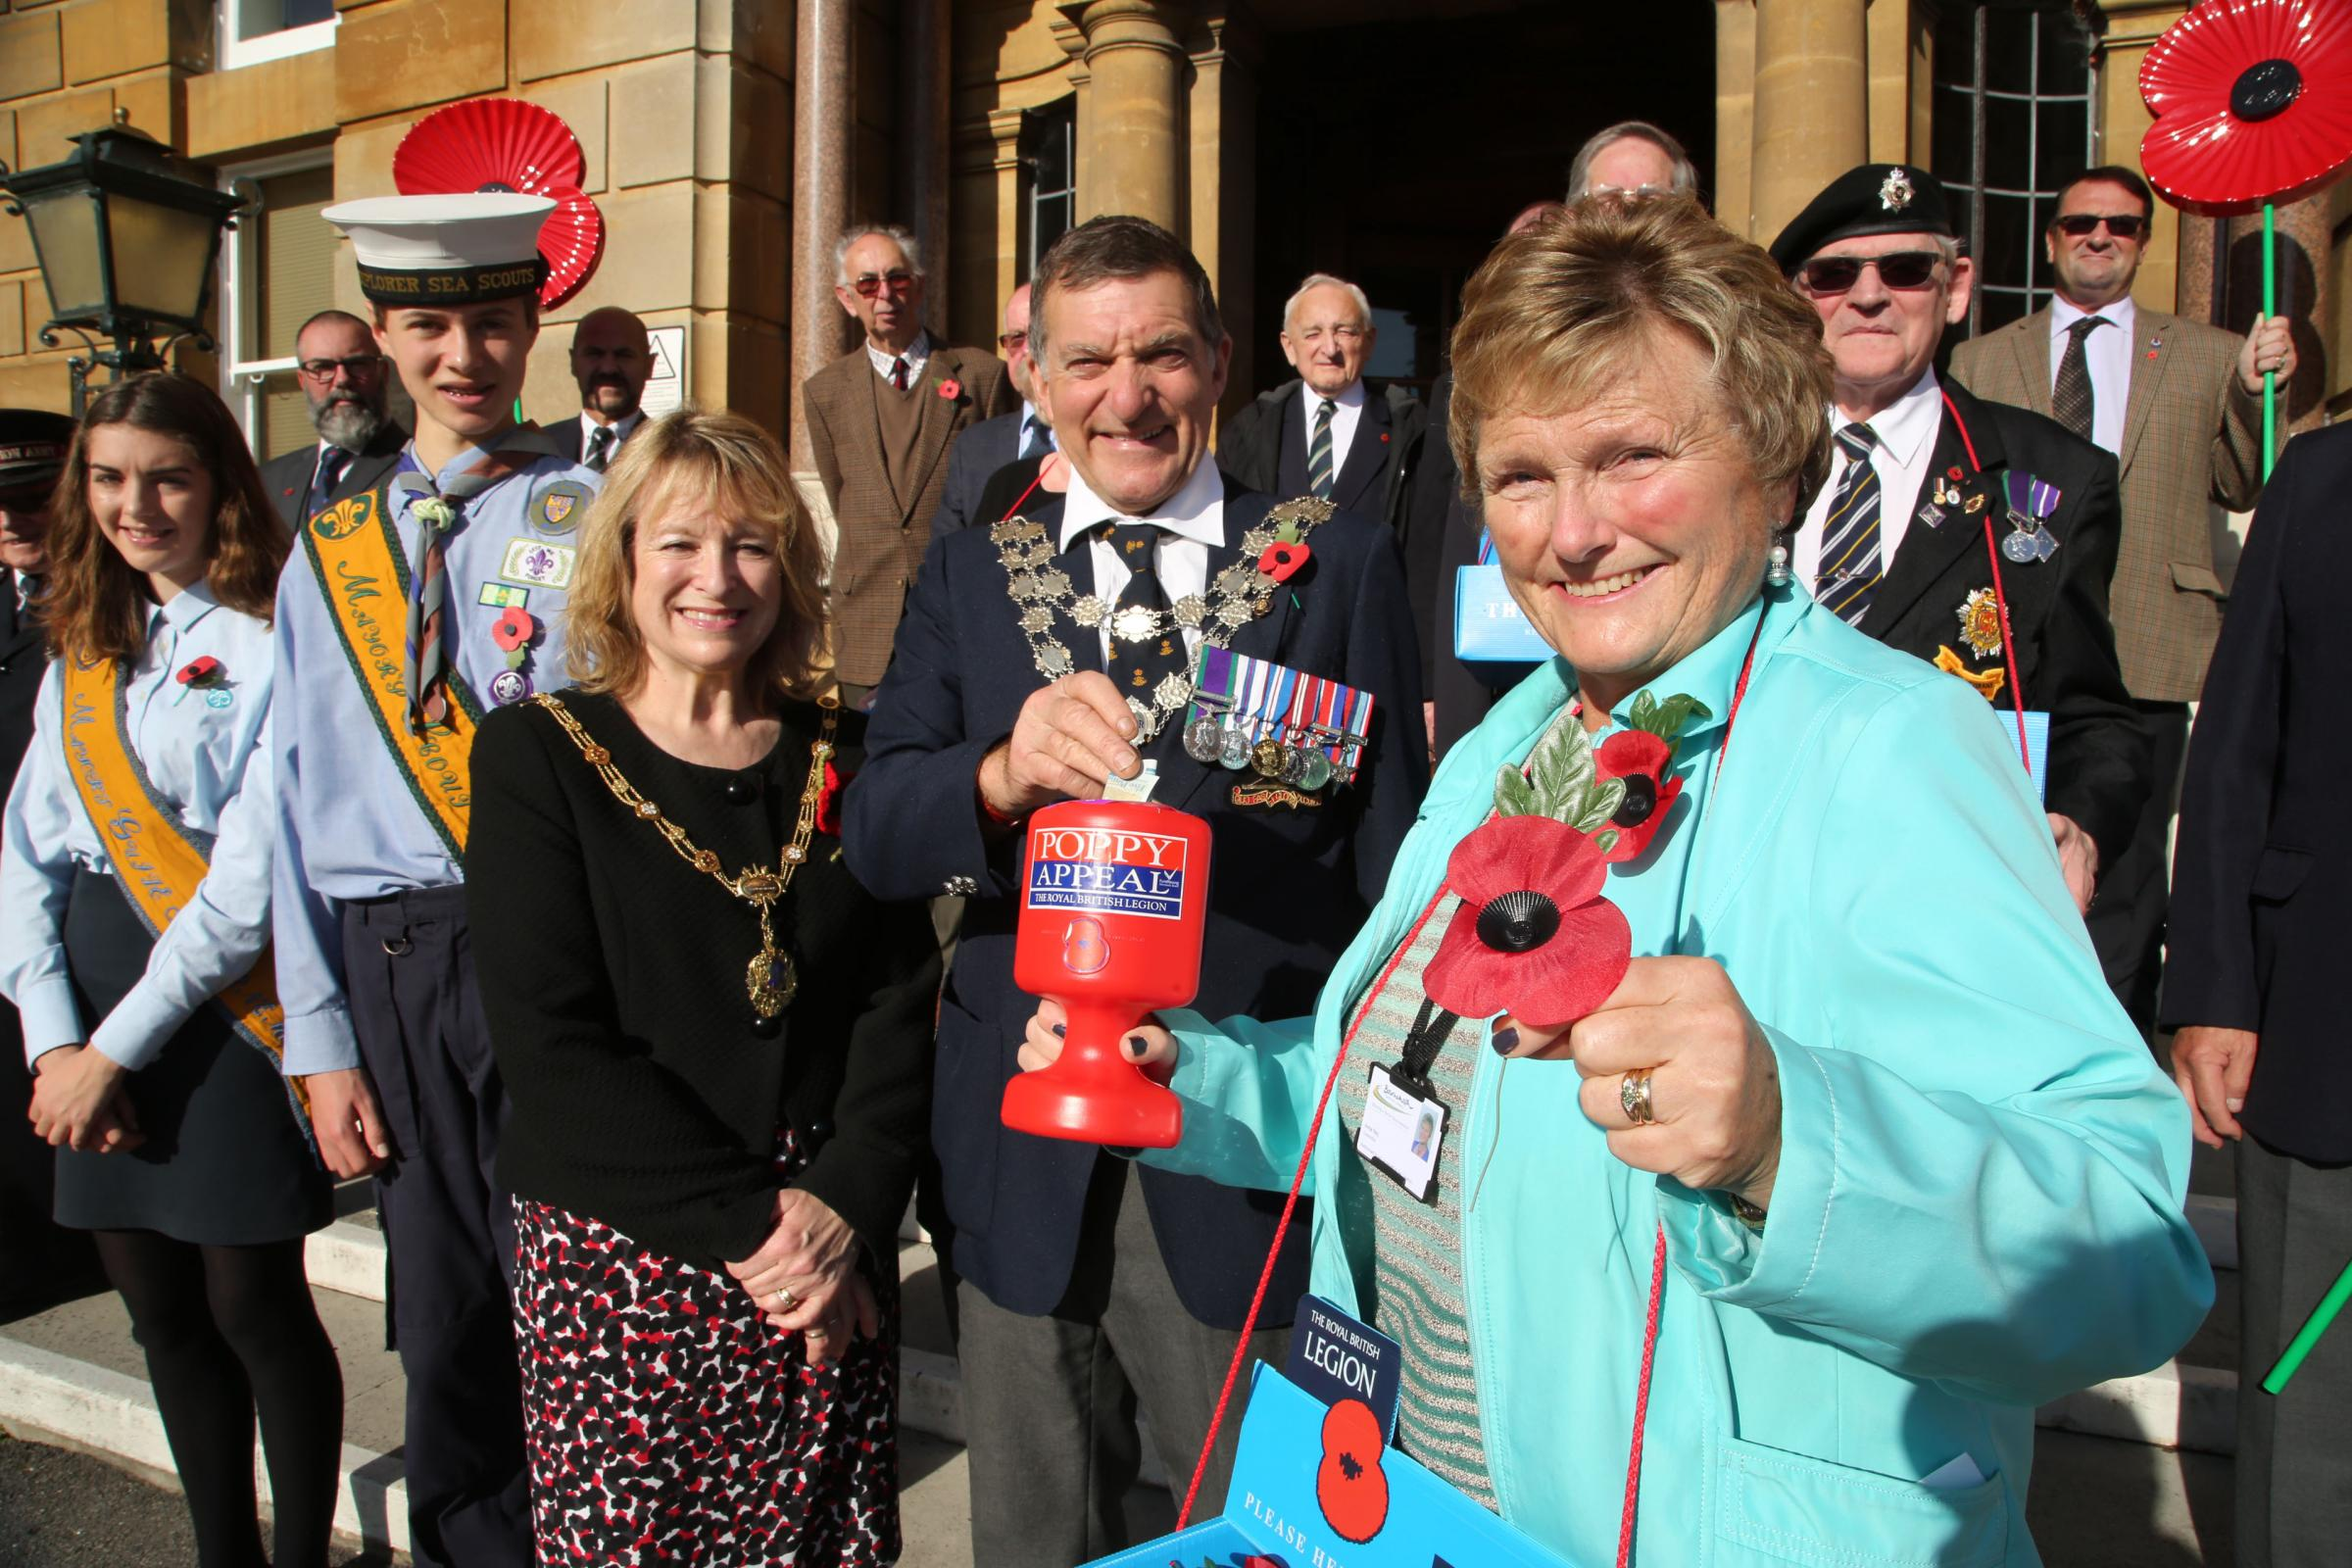 Cllr Anne Rey, who retired in November, at the launch of the 2016 Poppy Appeal in Bournemouth